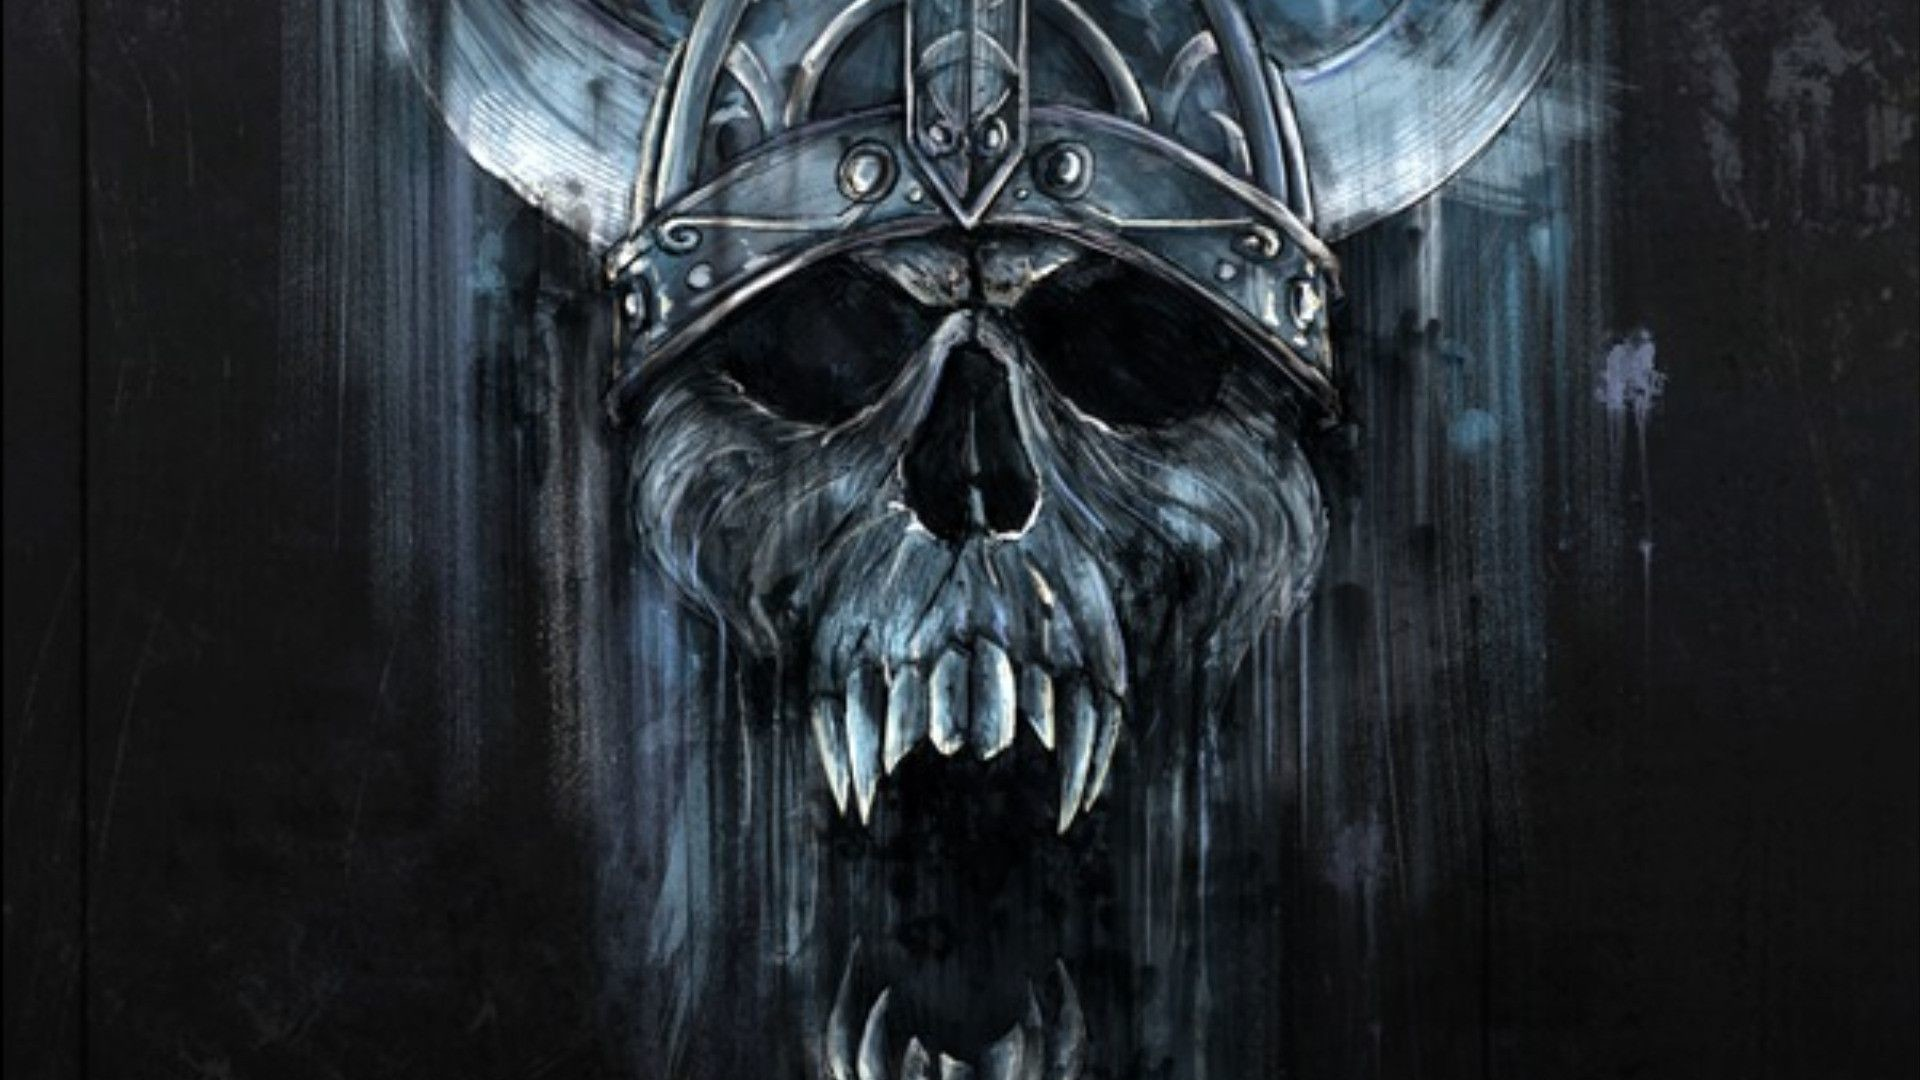 Skull wallpapers images 56 images 1920x1080 hd skull wallpapers wallpaper voltagebd Image collections